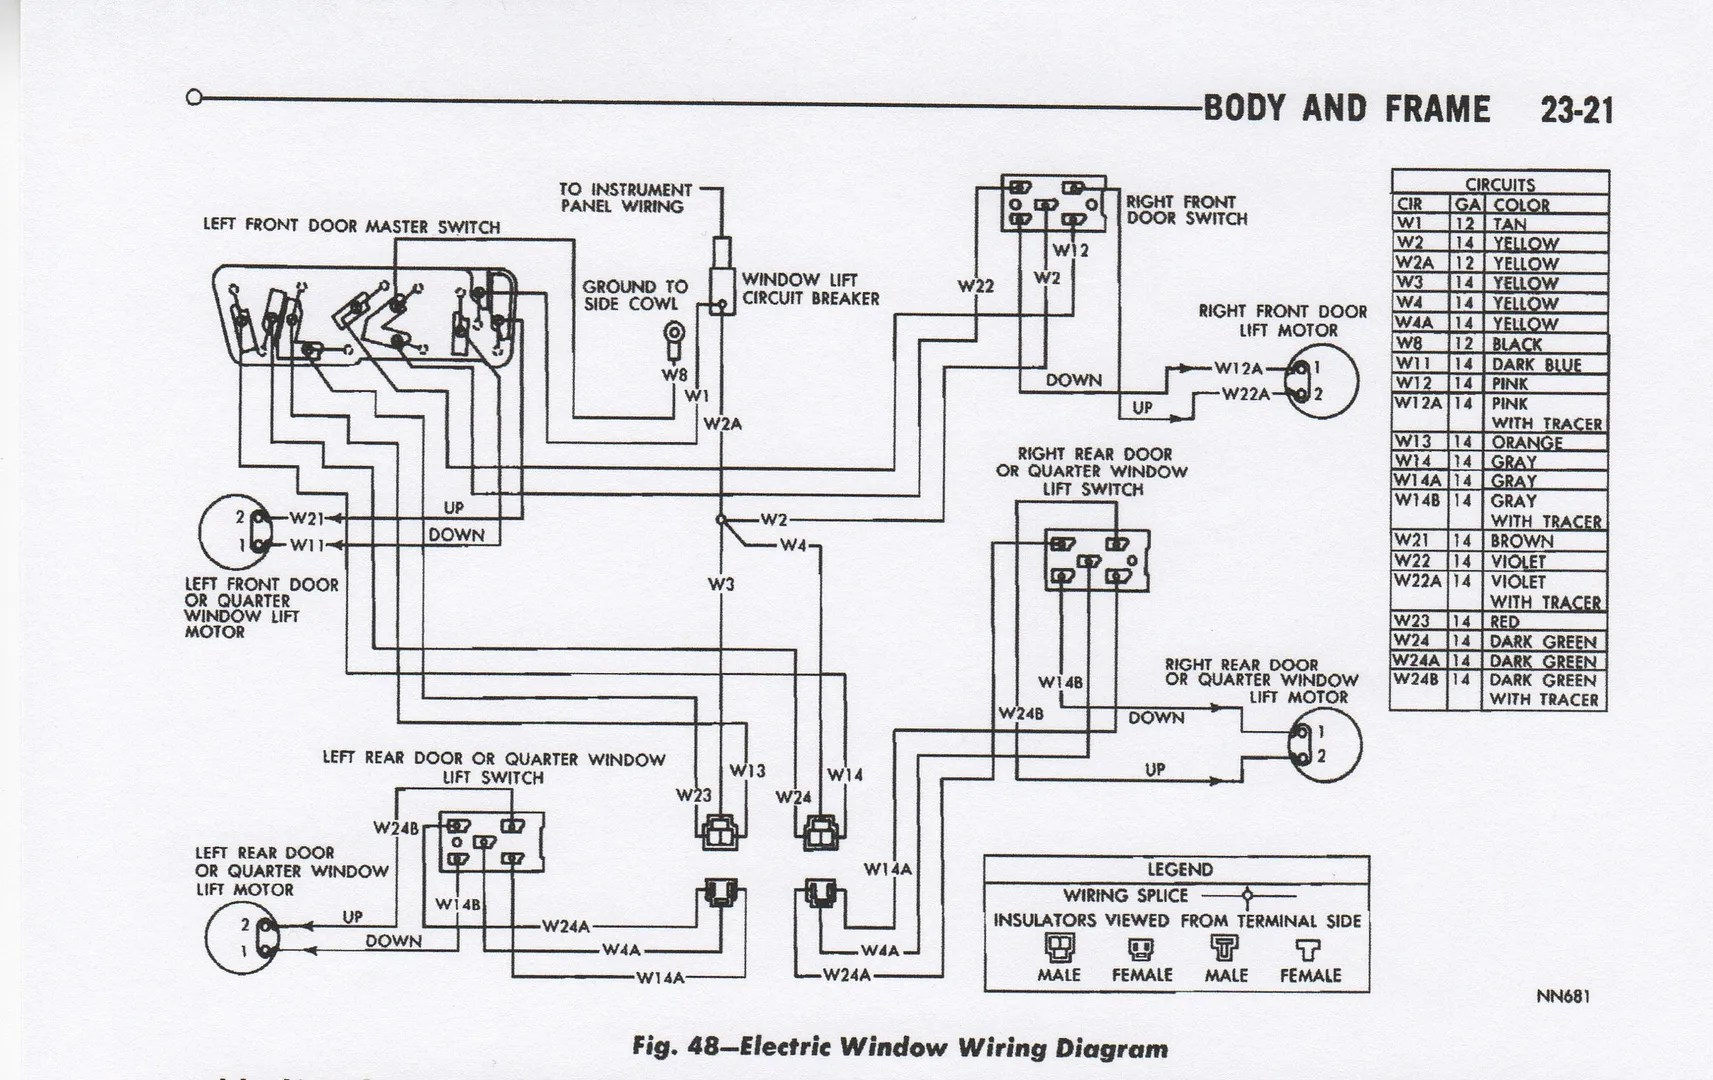 1973 Plymouth Duster Wiring Diagram, 1973, Free Engine